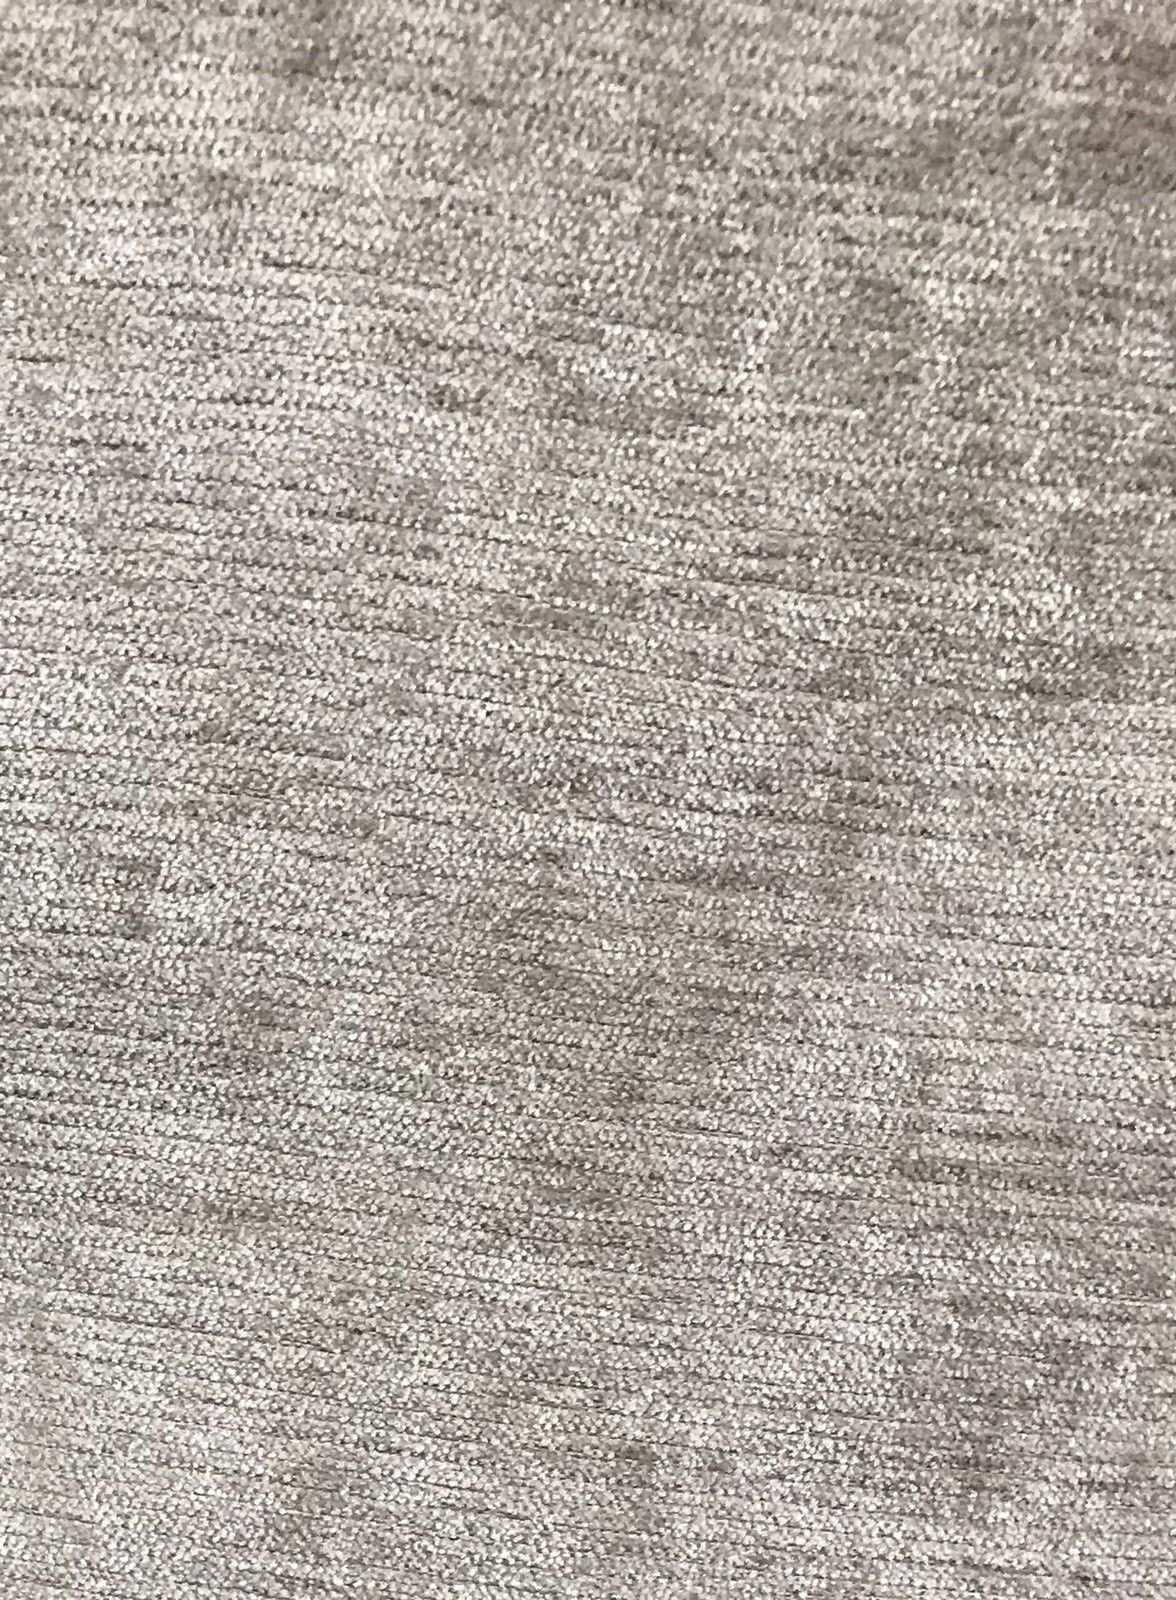 SWATCH: Designer Velvet Chenille Fabric - Antique Silver Gray - Upholstery - Fancy Styles Fabric Boutique